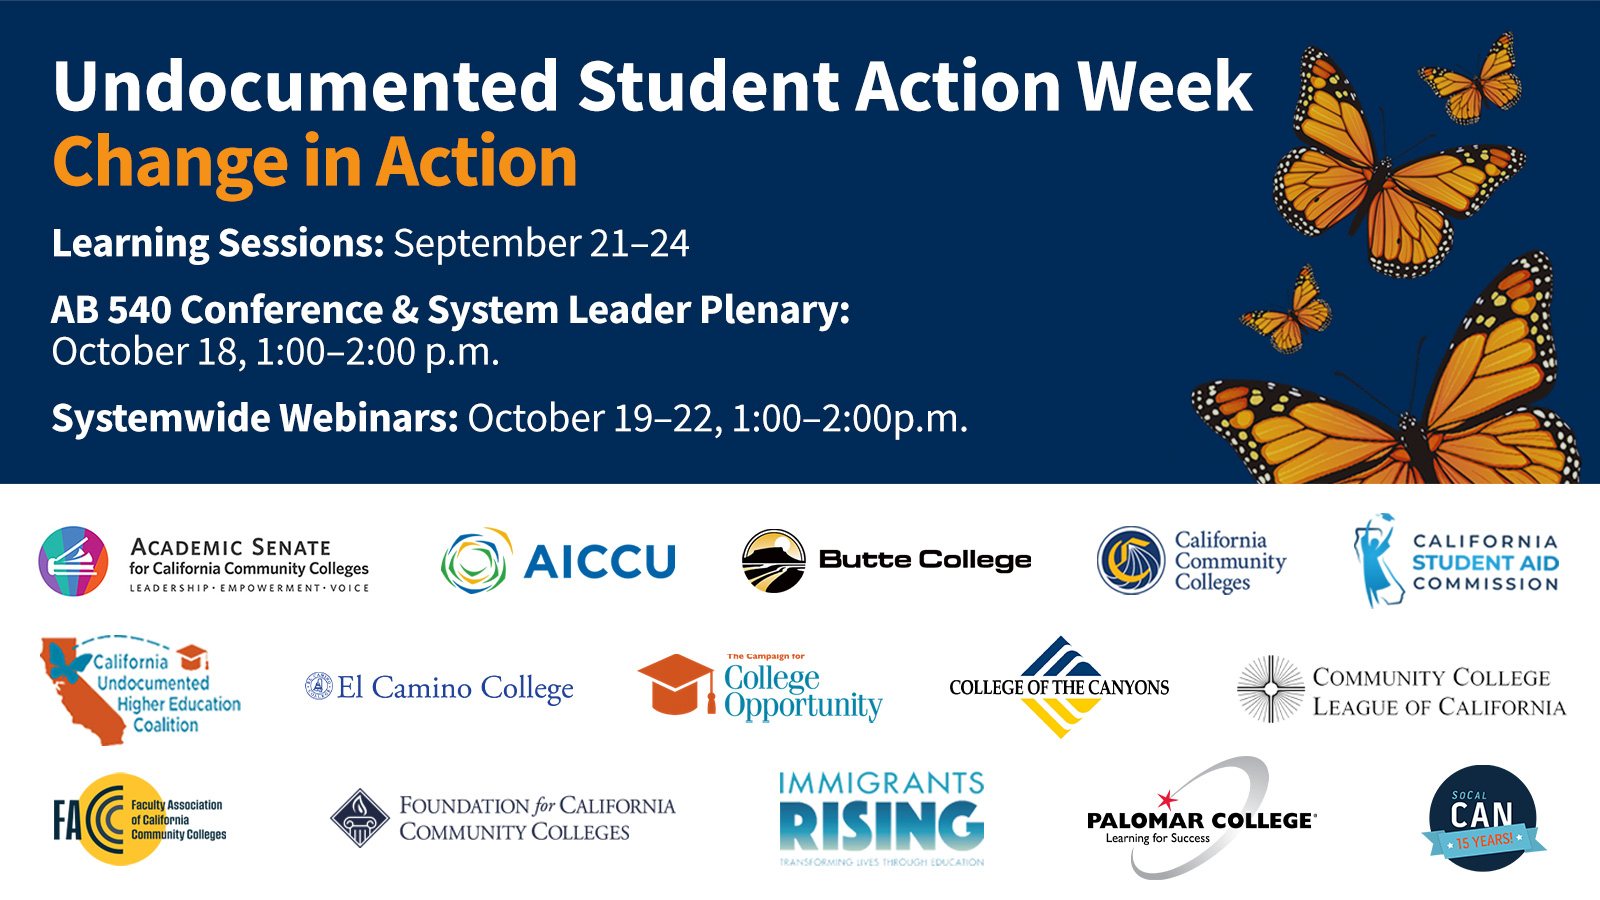 Save the date. Undocumented Student Action Week. Change in Action. October 18-22, 2021. Systemwide webinars from 1:00 - 2: pm